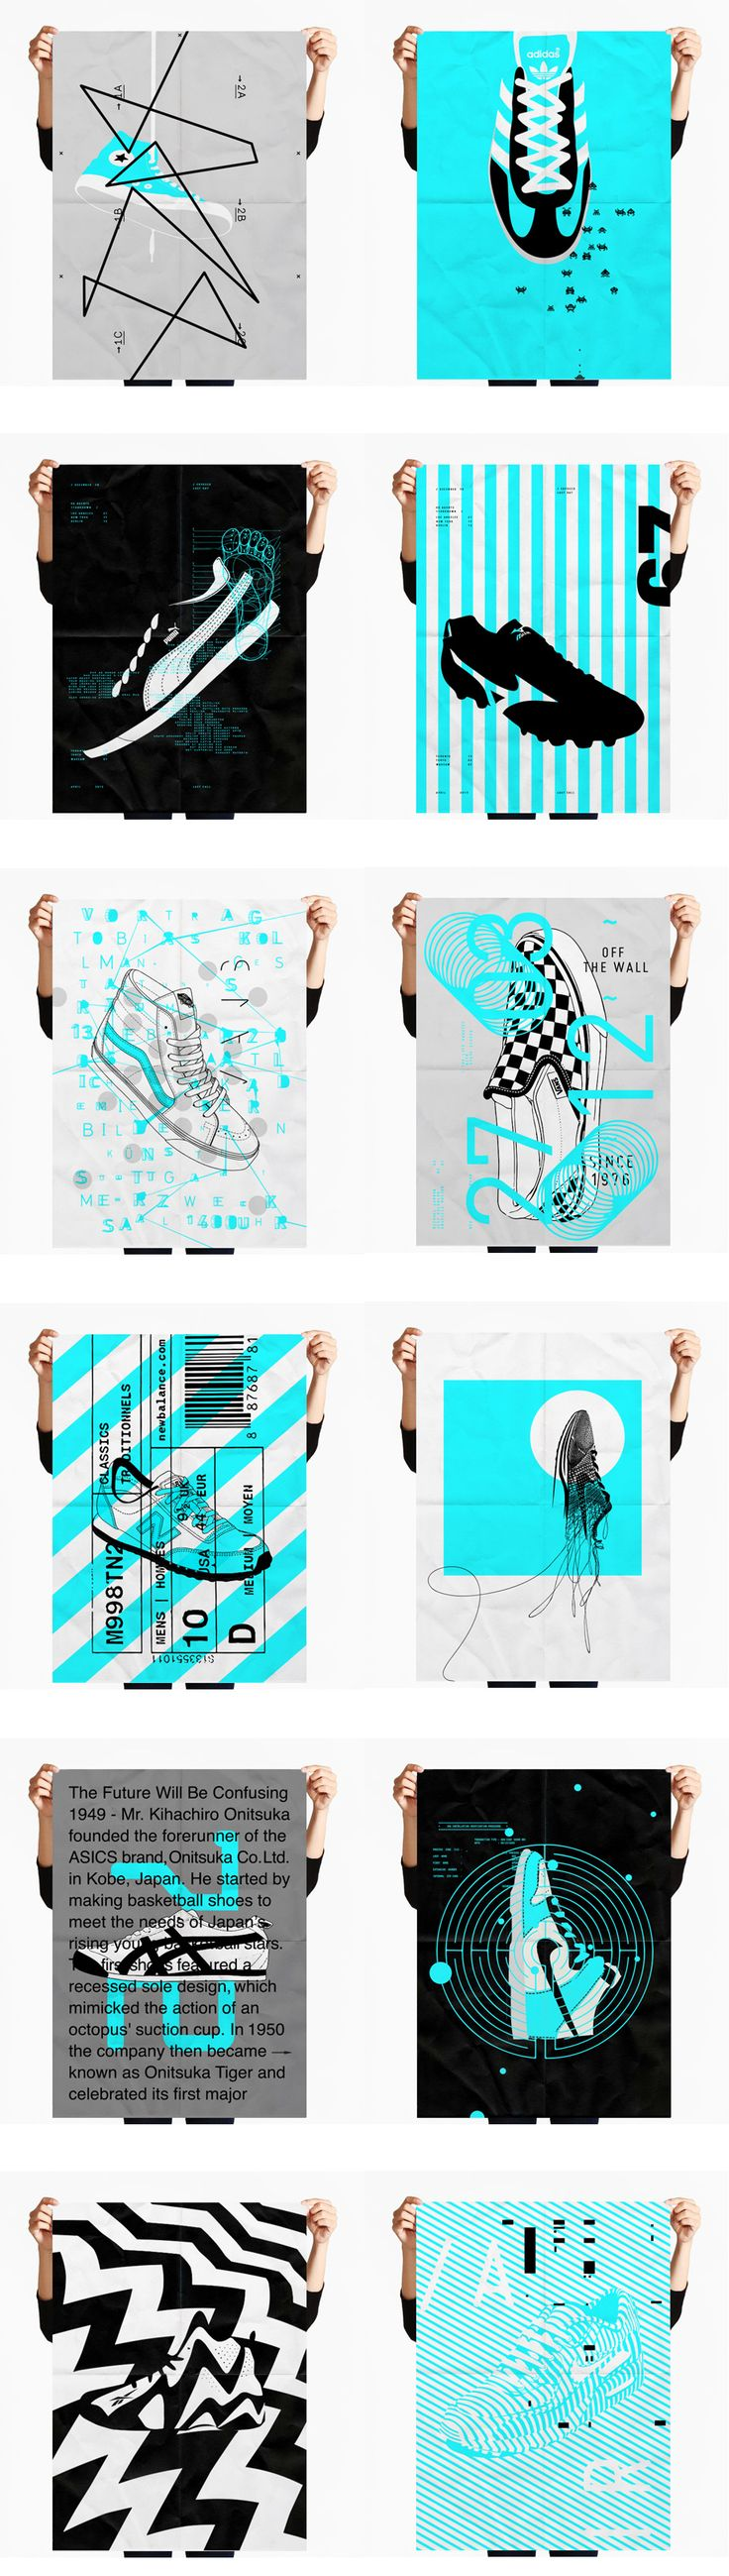 Poster design pinterest - Personal Project Screen Printing Sneakers Poster Series